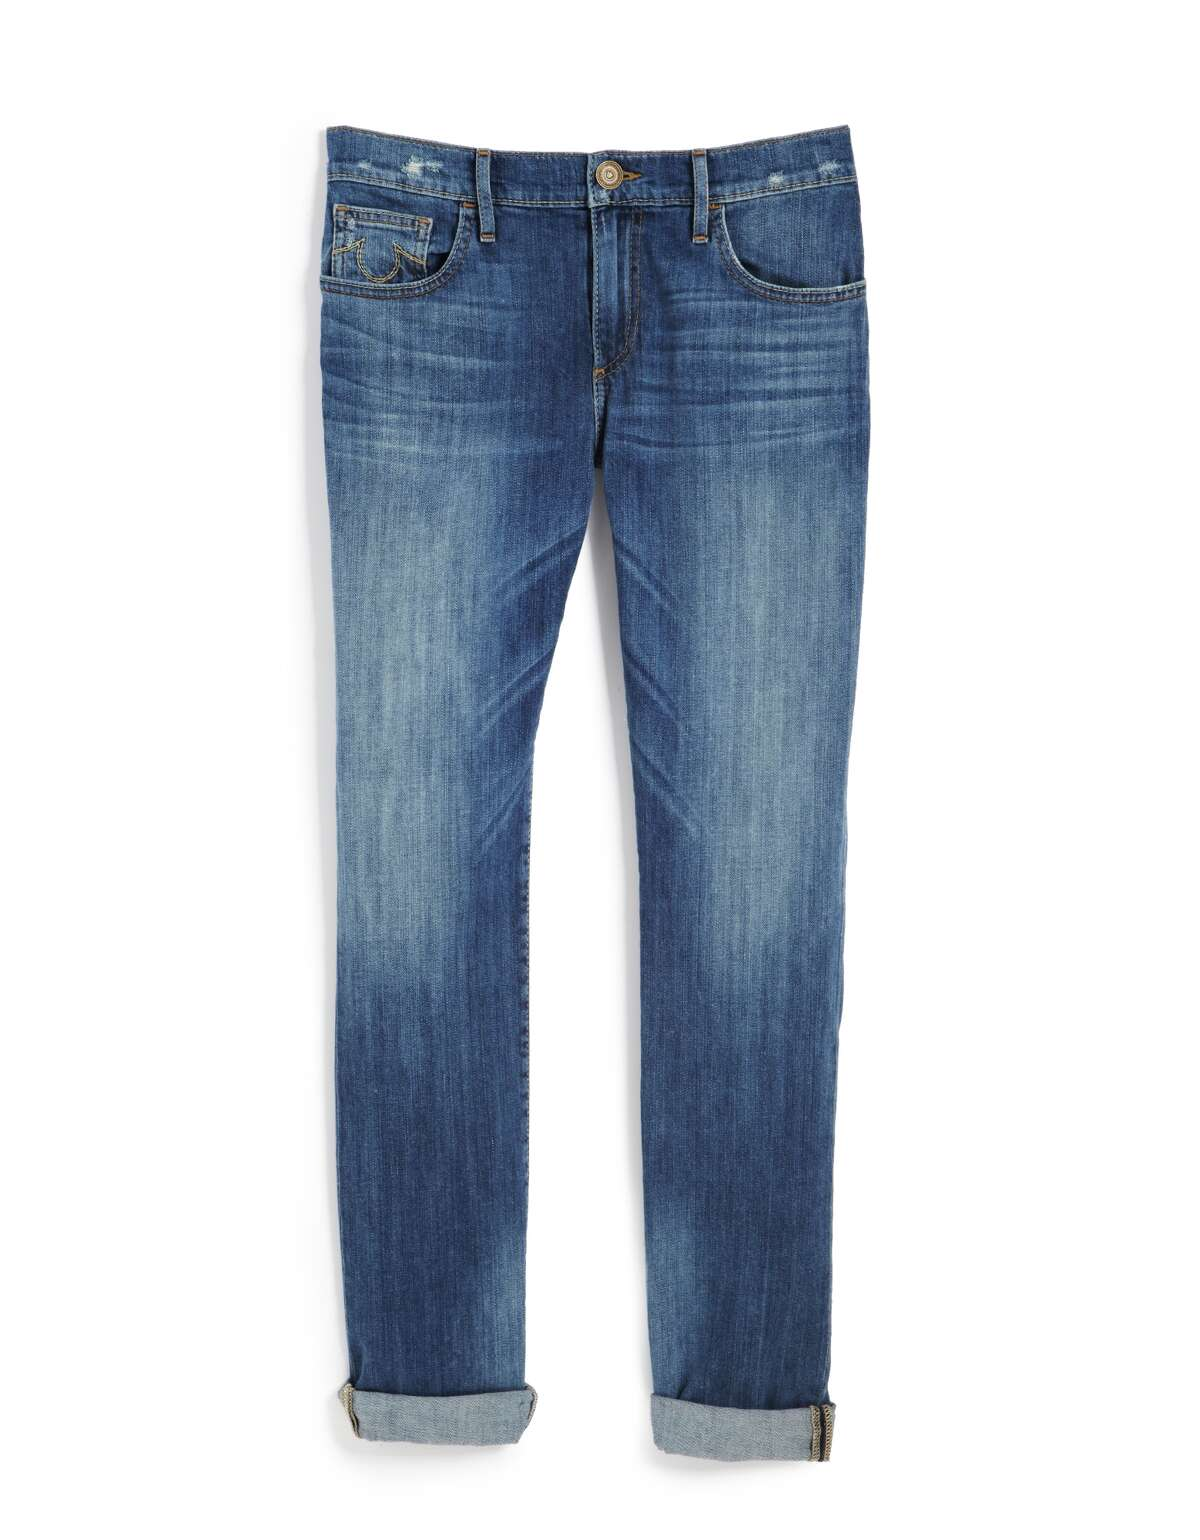 A staple is born On May 20, 1873, Levi Strauss and Jacob Davis received the patent for their denim blue jeans with copper rivets. Davis had invented them two years earlier.